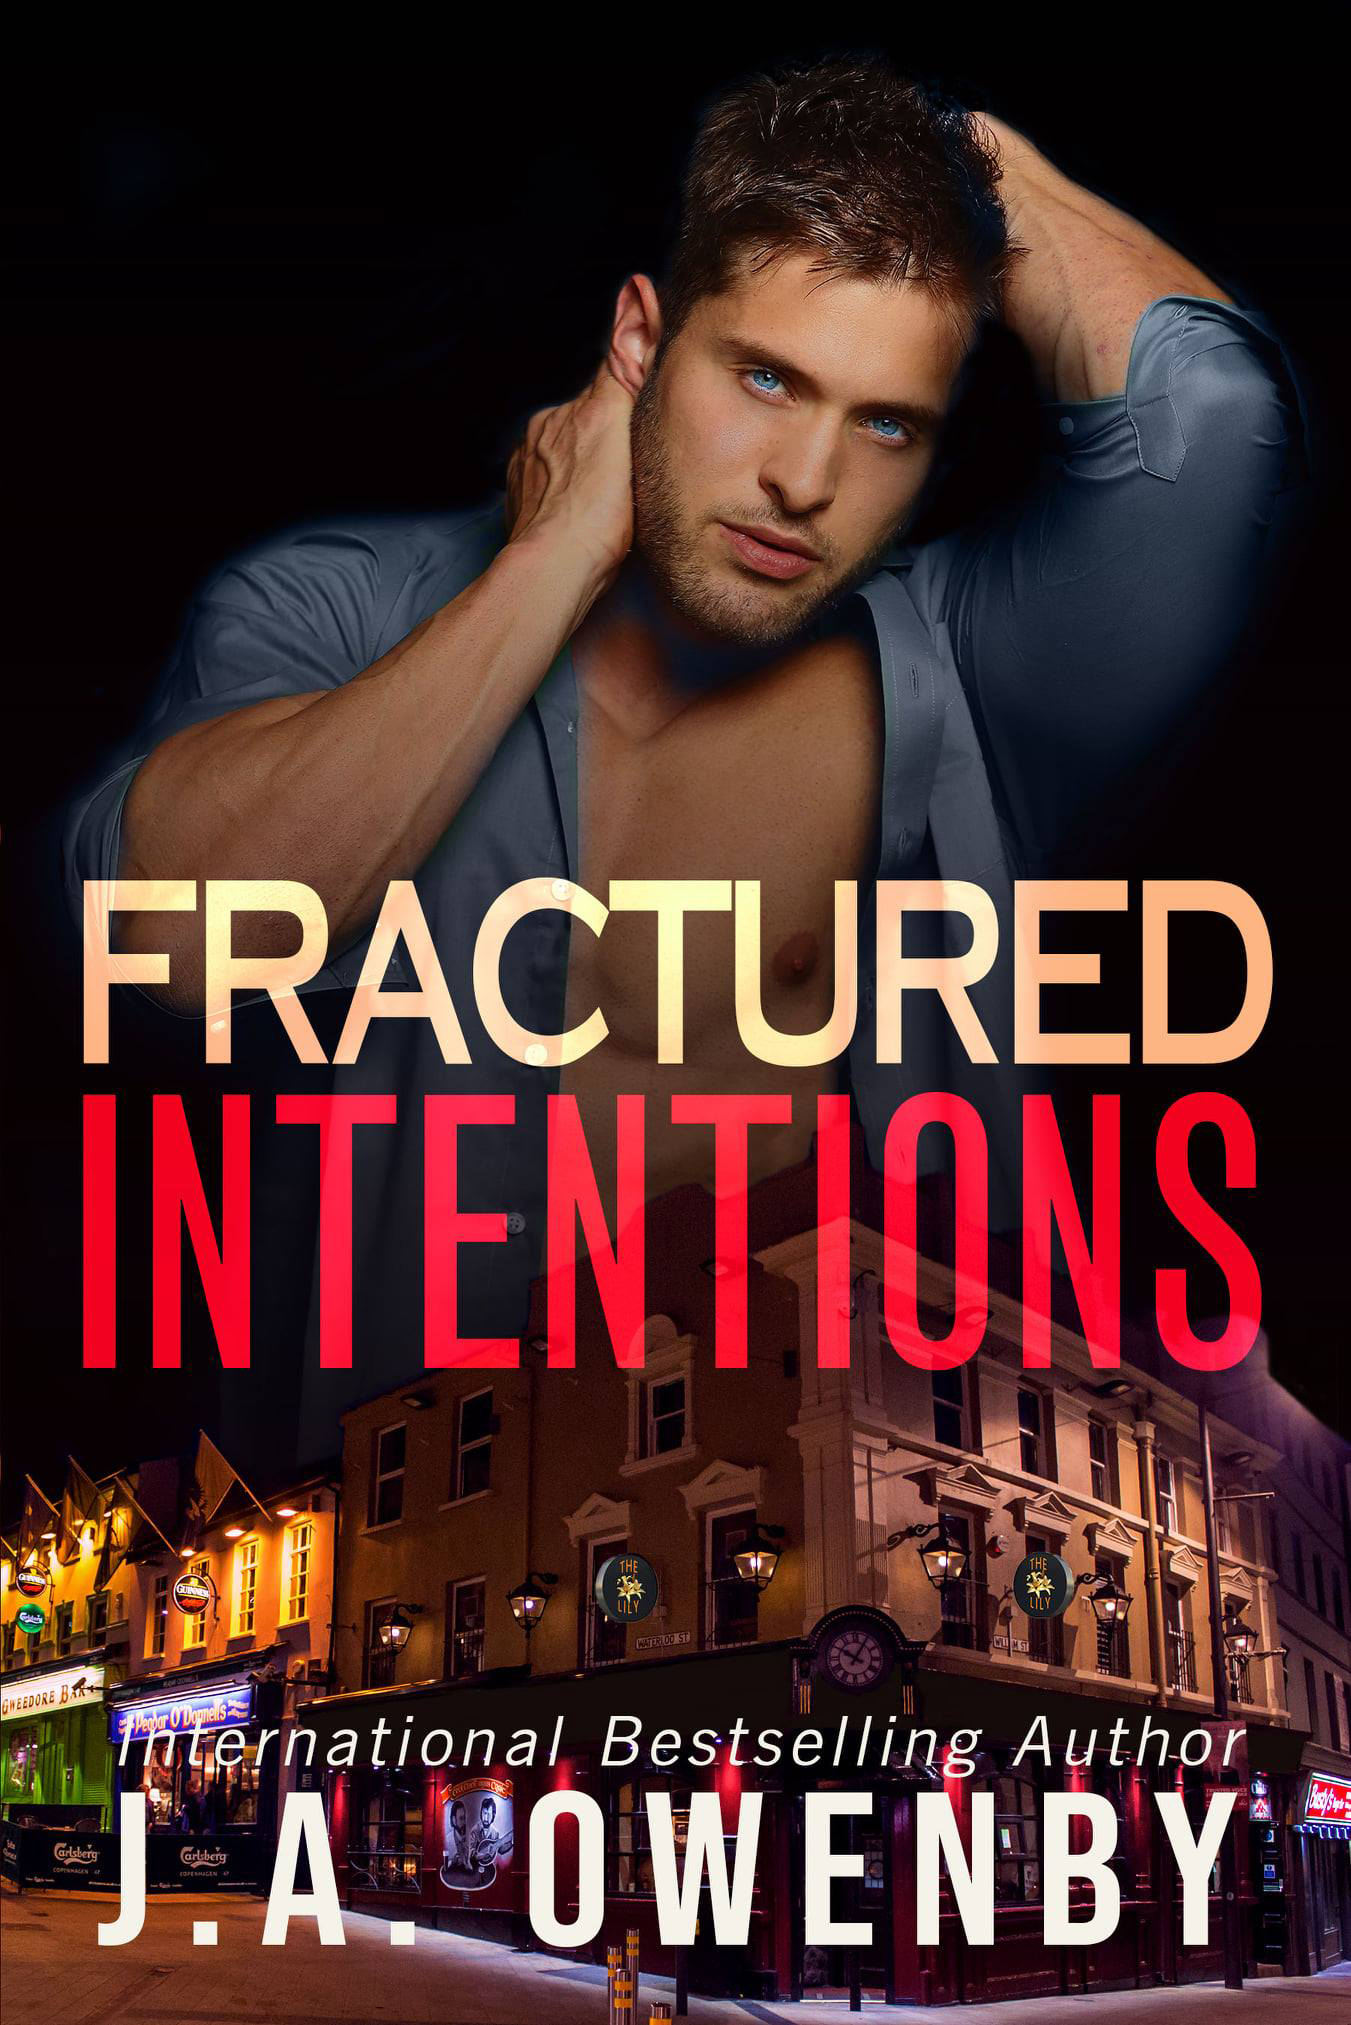 FRACTURED INTENTIONS